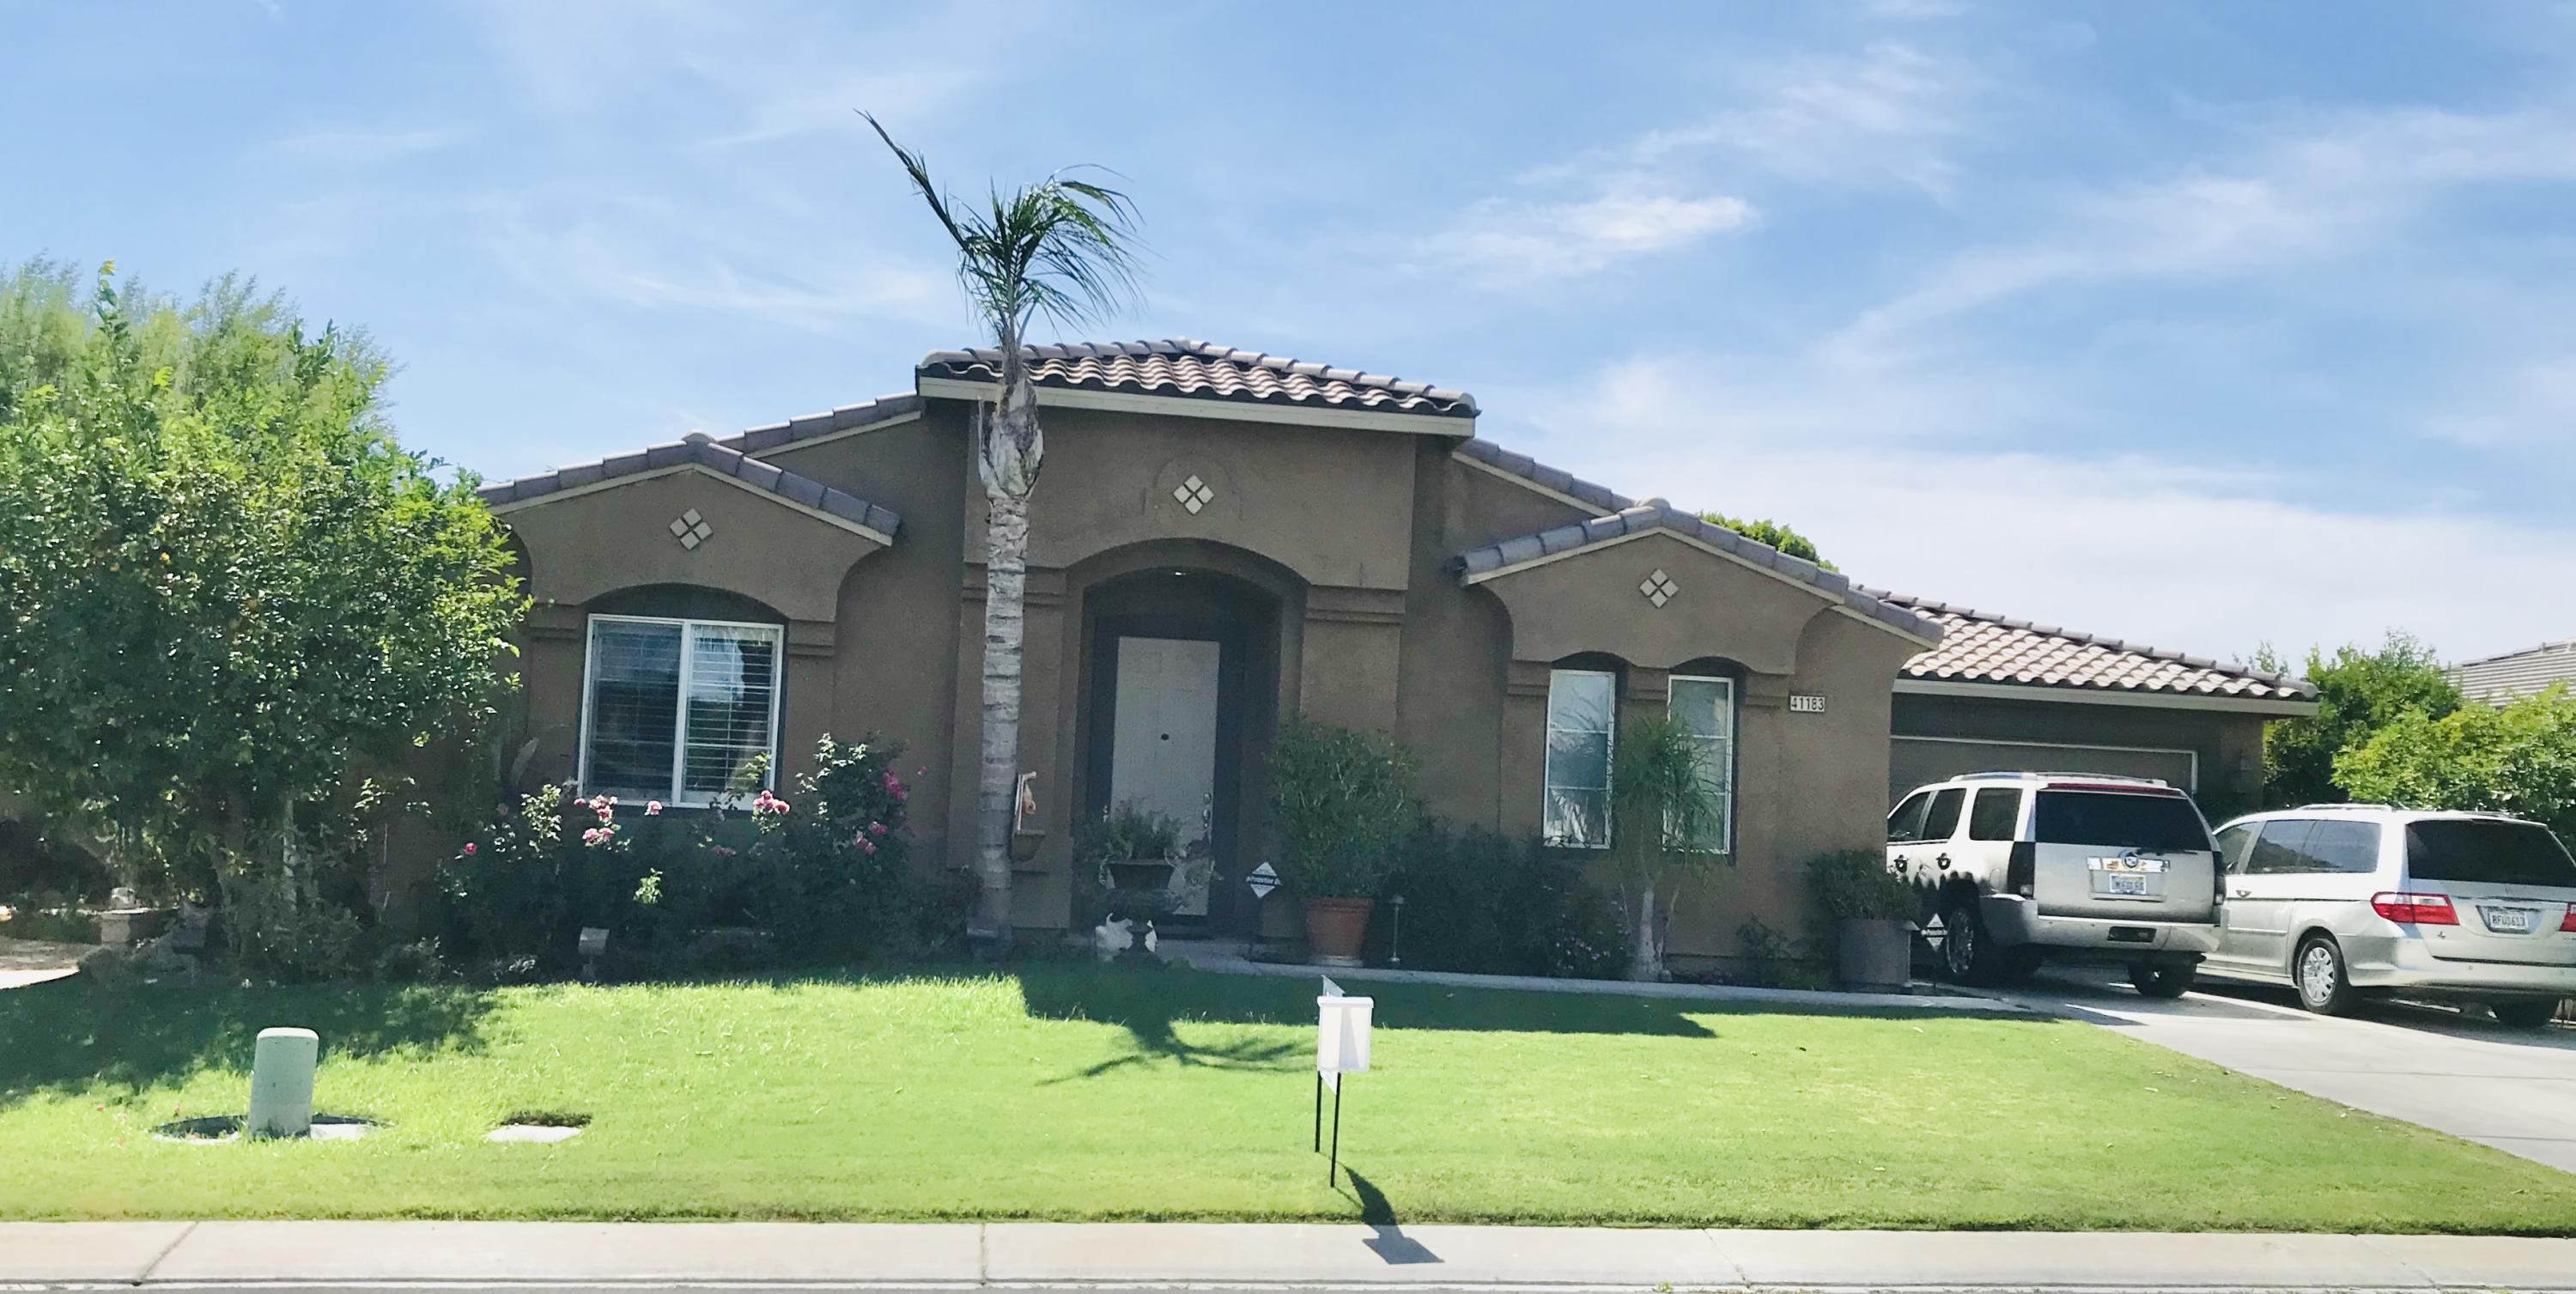 41183 Rochester Court, Indio, California 92203, 4 Bedrooms Bedrooms, ,4 BathroomsBathrooms,Residential,For Sale,41183 Rochester Court,219042673